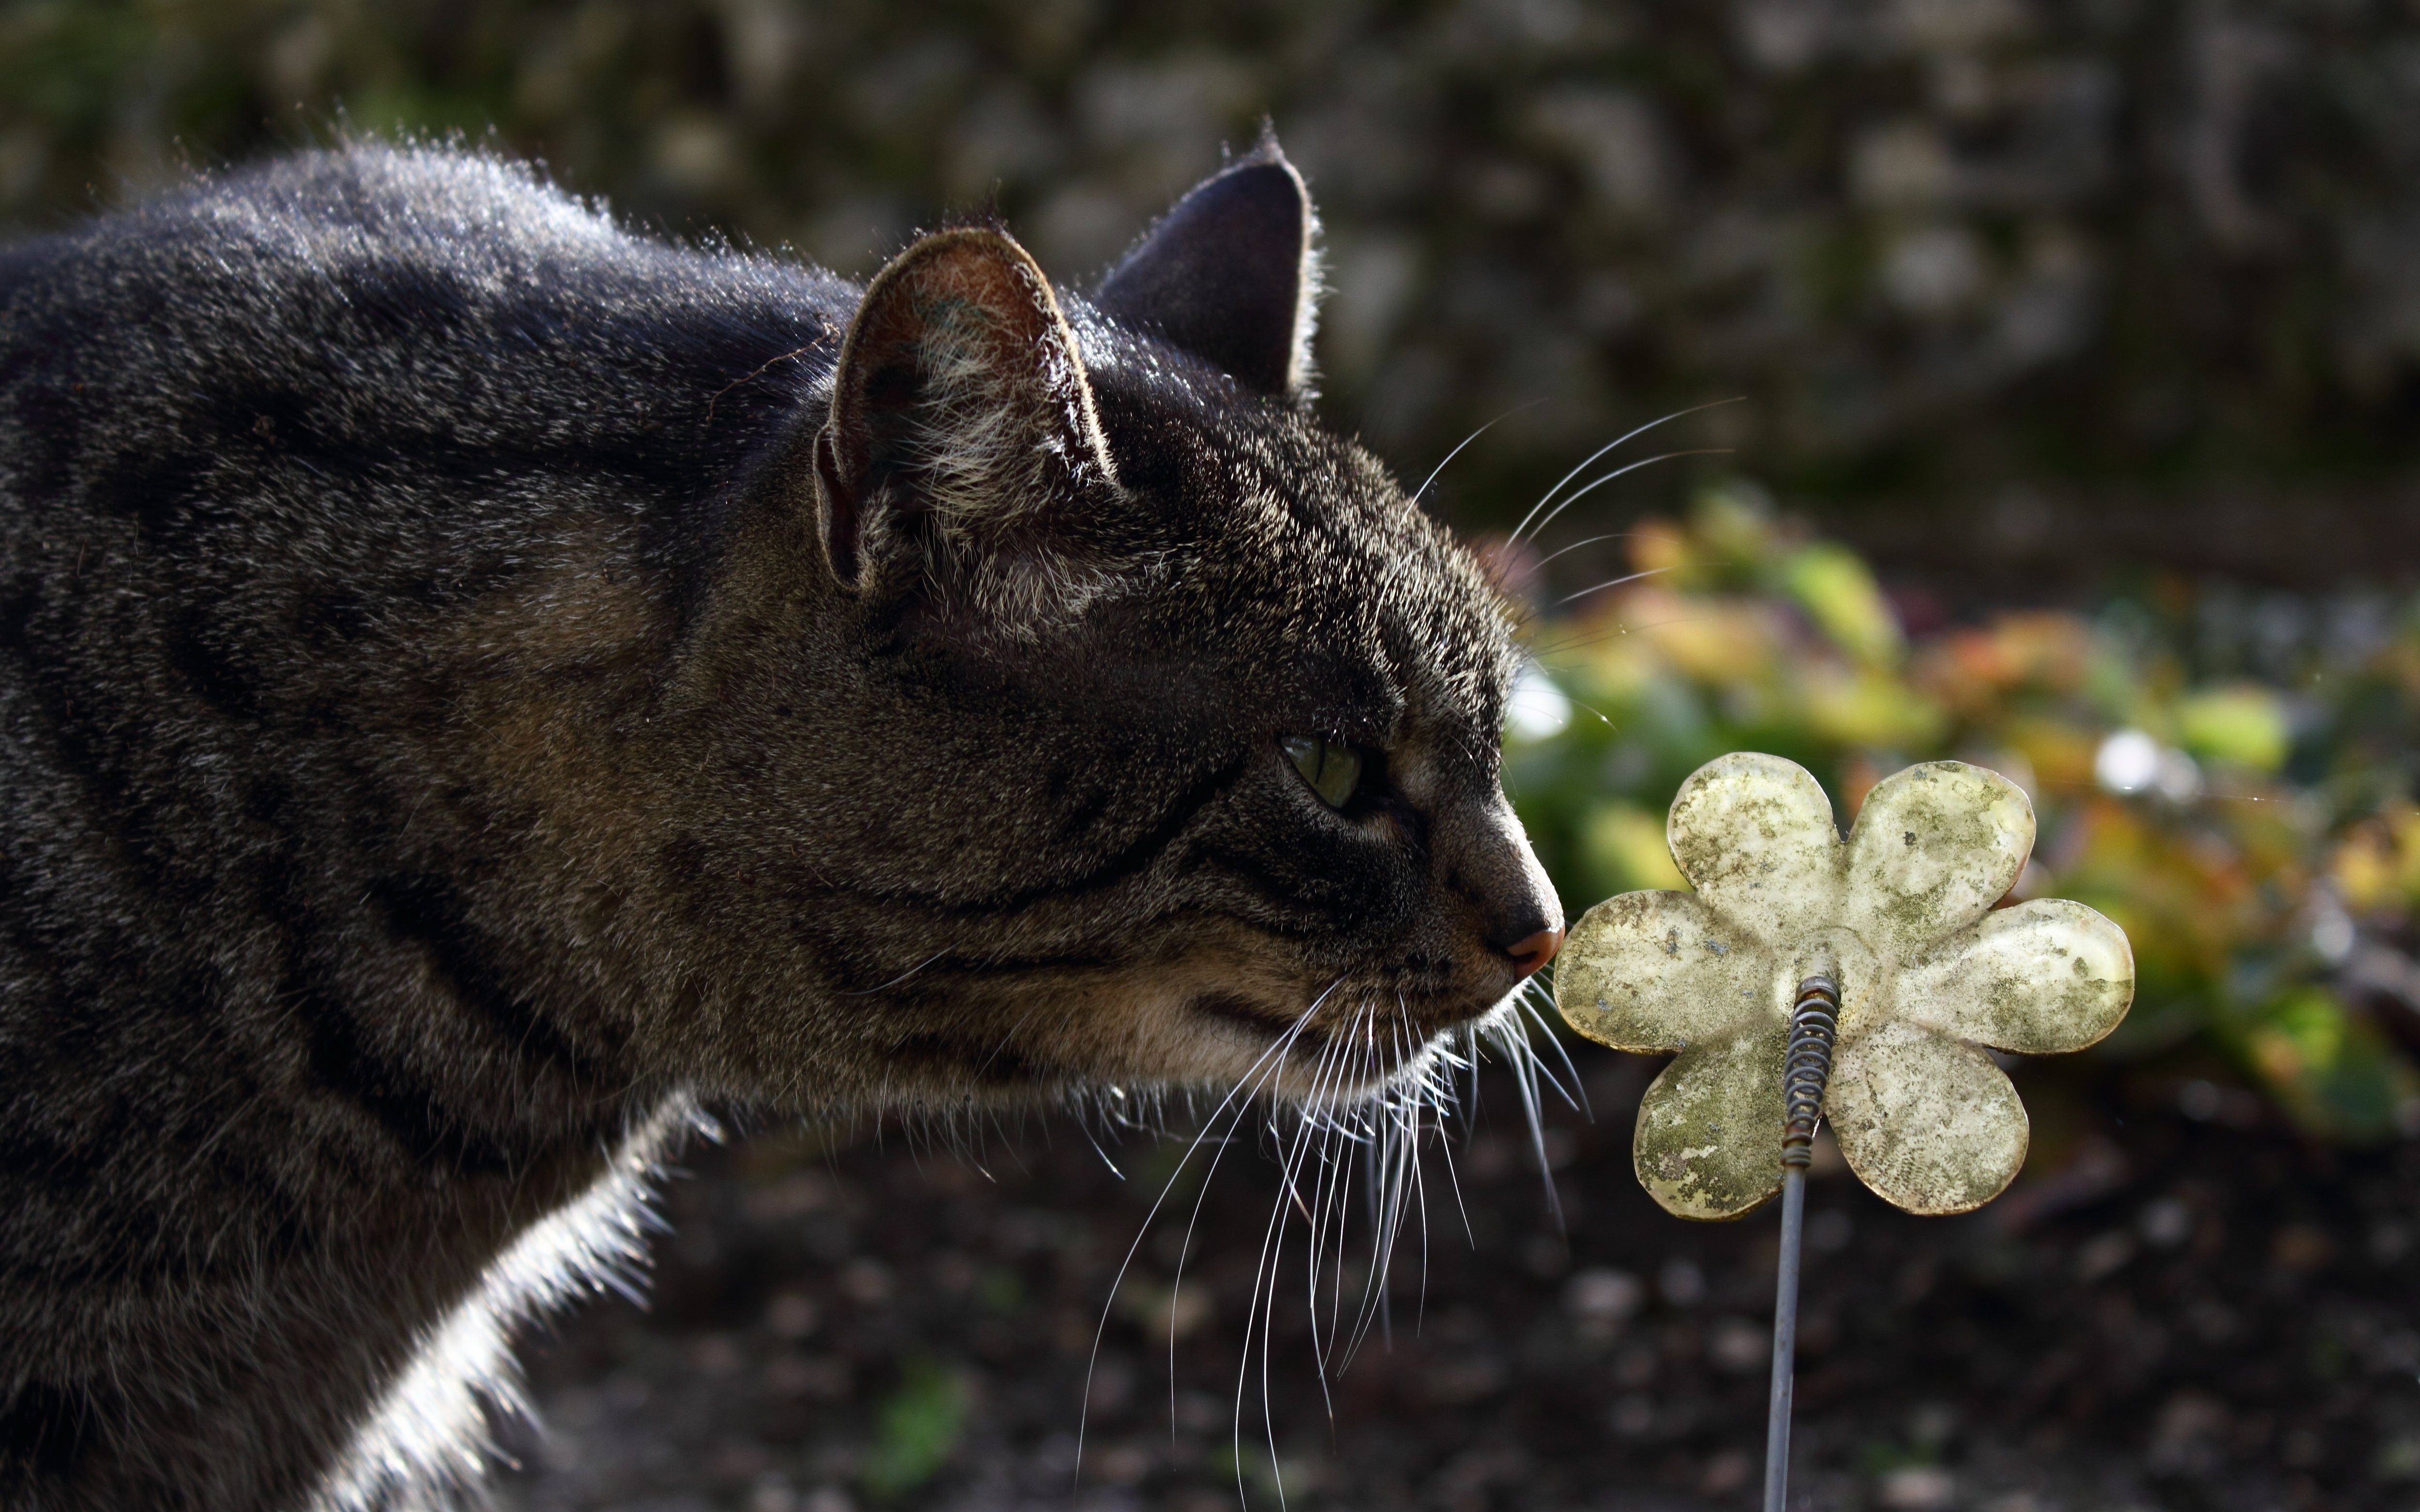 108658 download wallpaper Animals, Cat, Muzzle, Striped, Flower screensavers and pictures for free